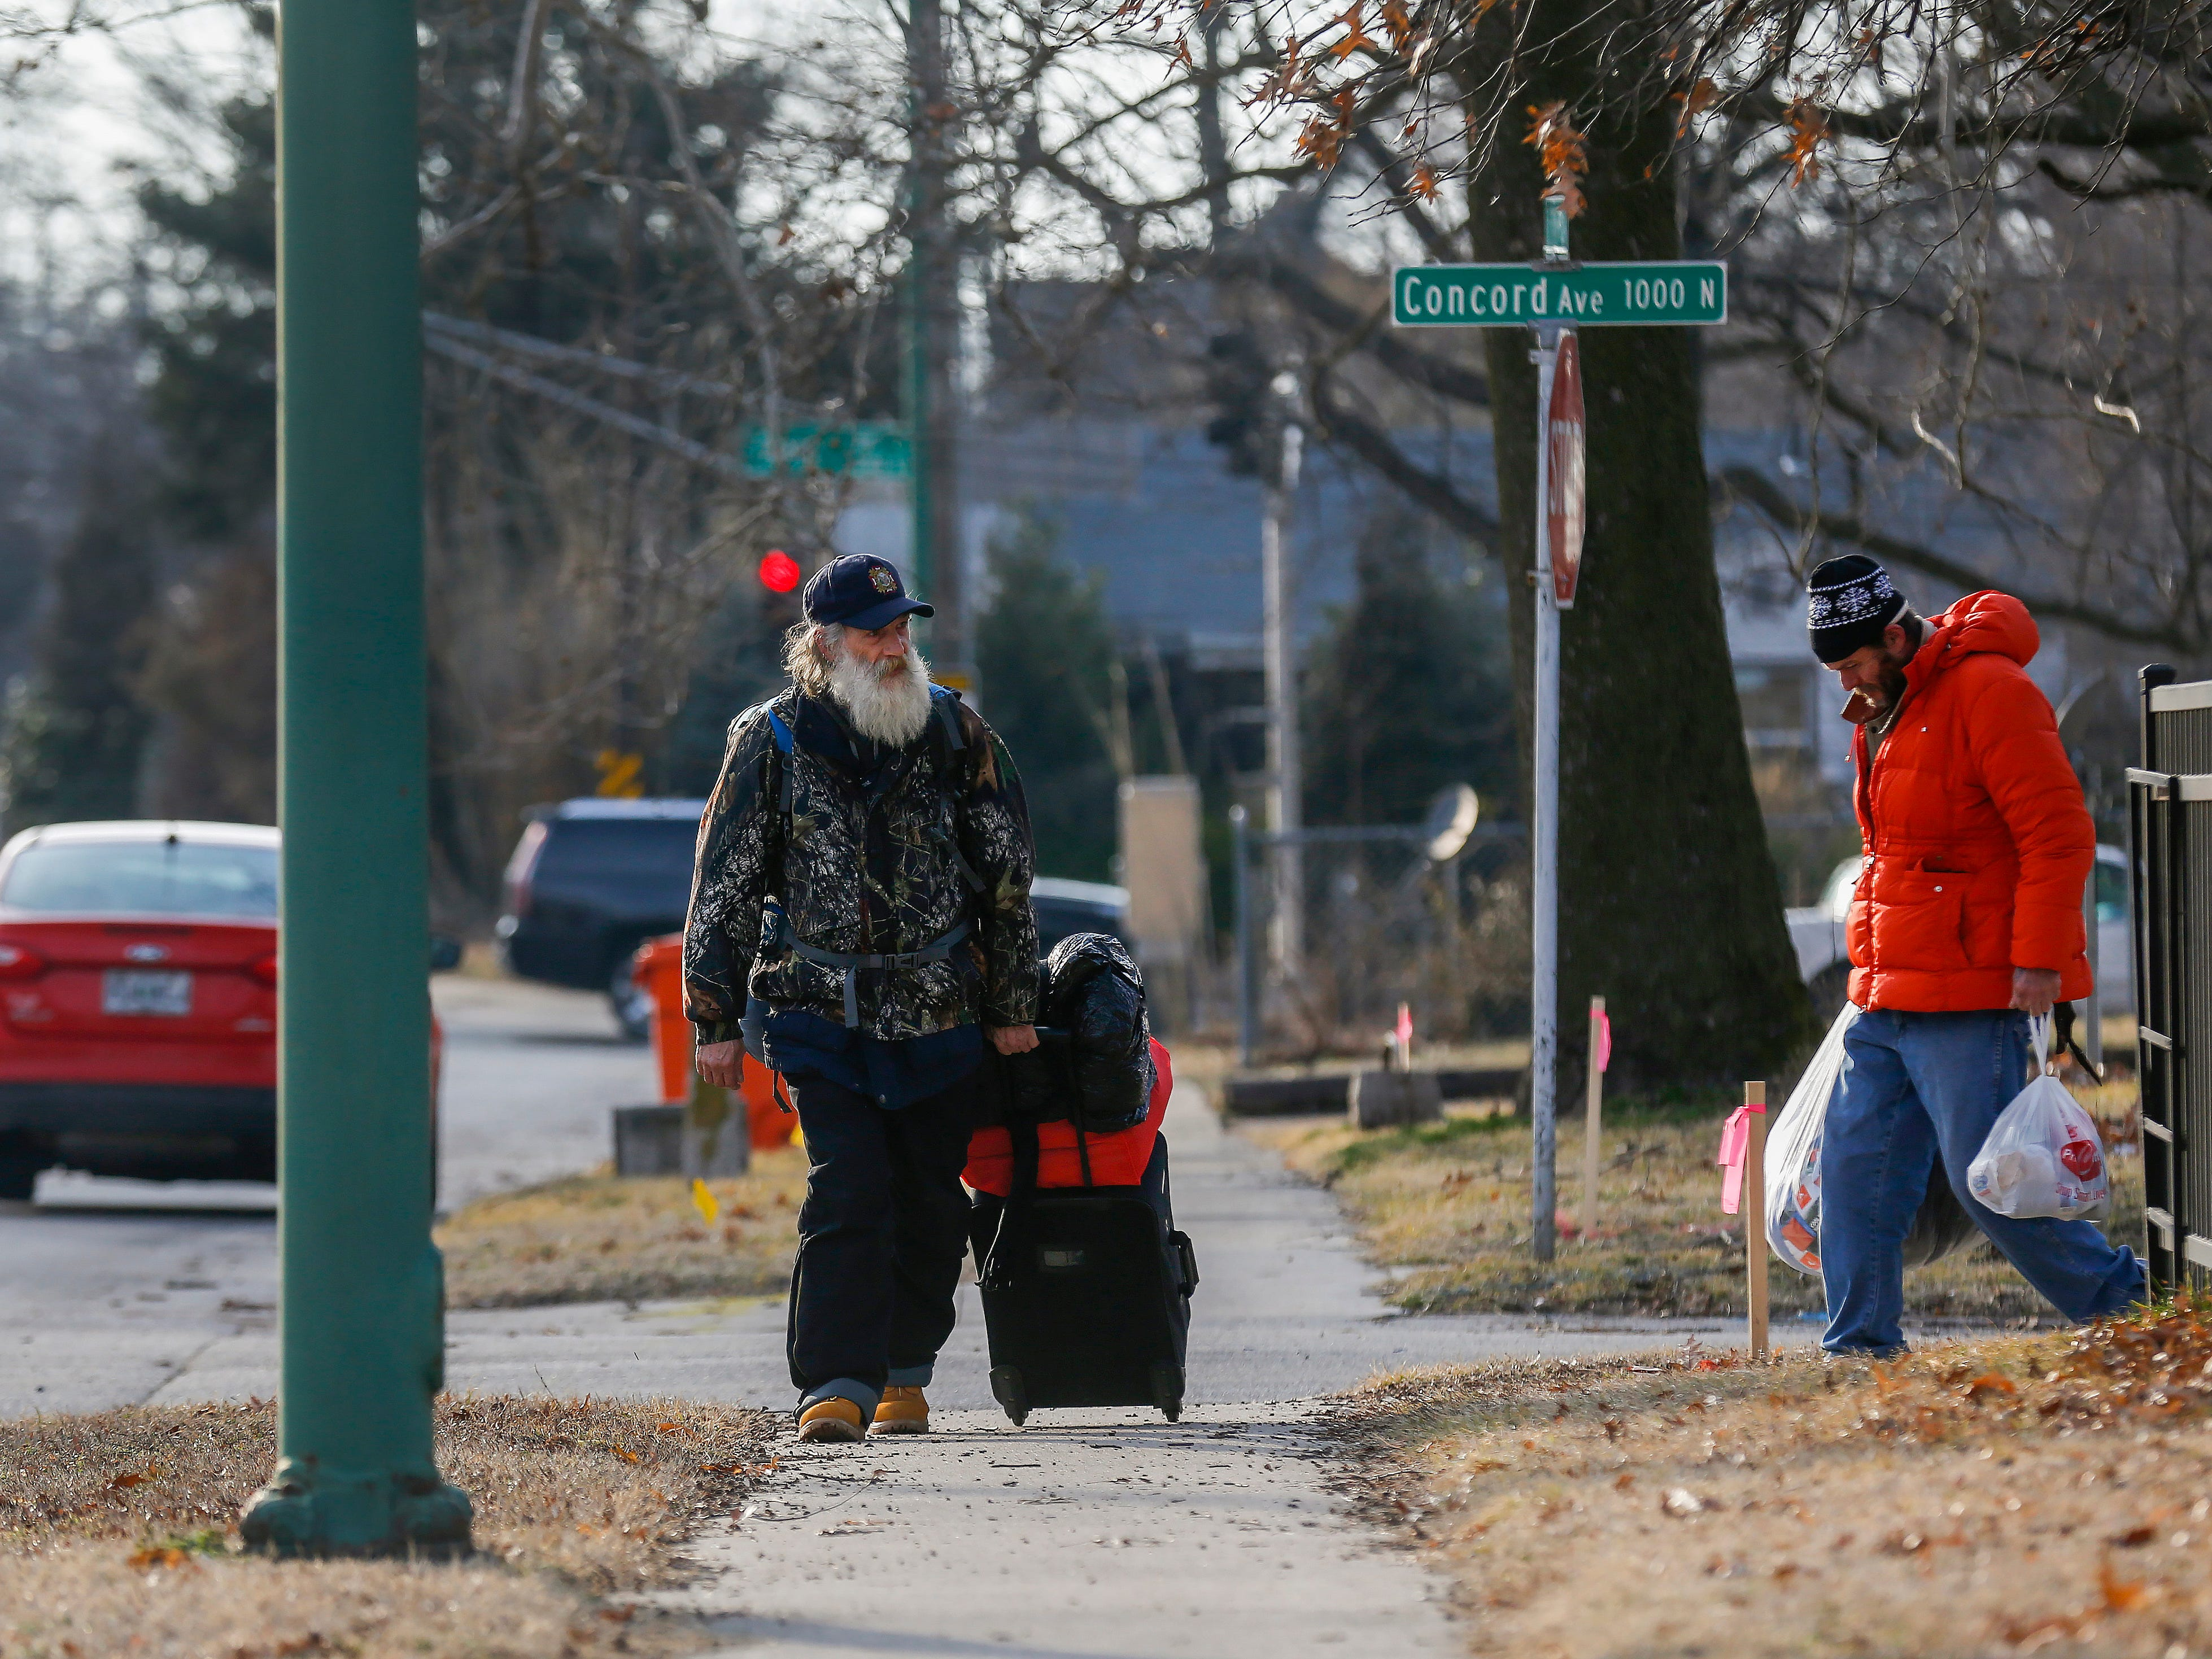 Gil Rife, who has been homeless for 3 years, walks down W. Nichols Street while on his way to Franciscan Villa for a meal on Wednesday, Feb. 20, 2019.